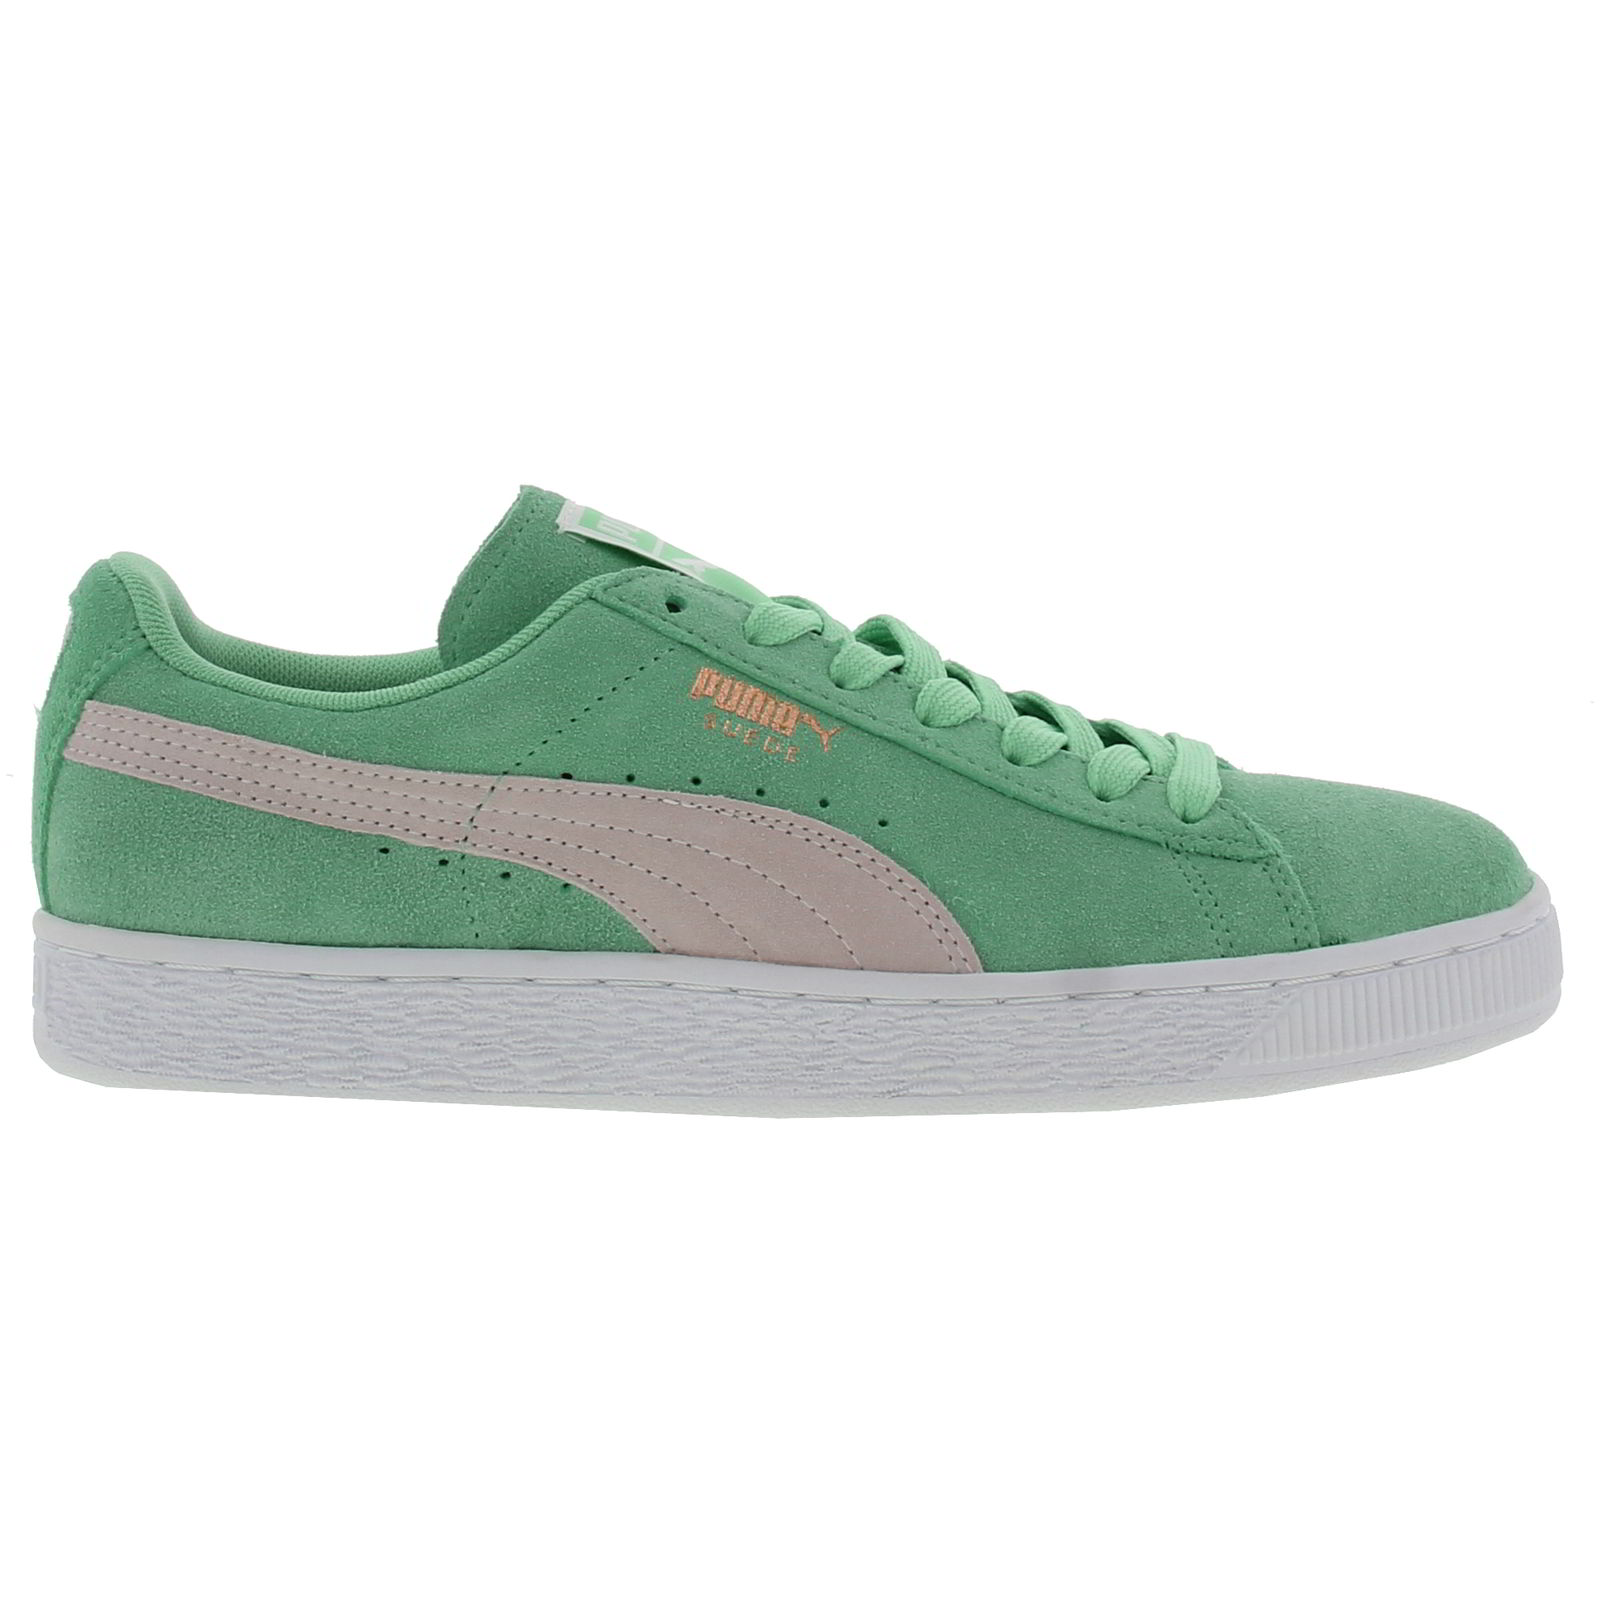 puma suede classic womens blue green suede trainers shoes. Black Bedroom Furniture Sets. Home Design Ideas